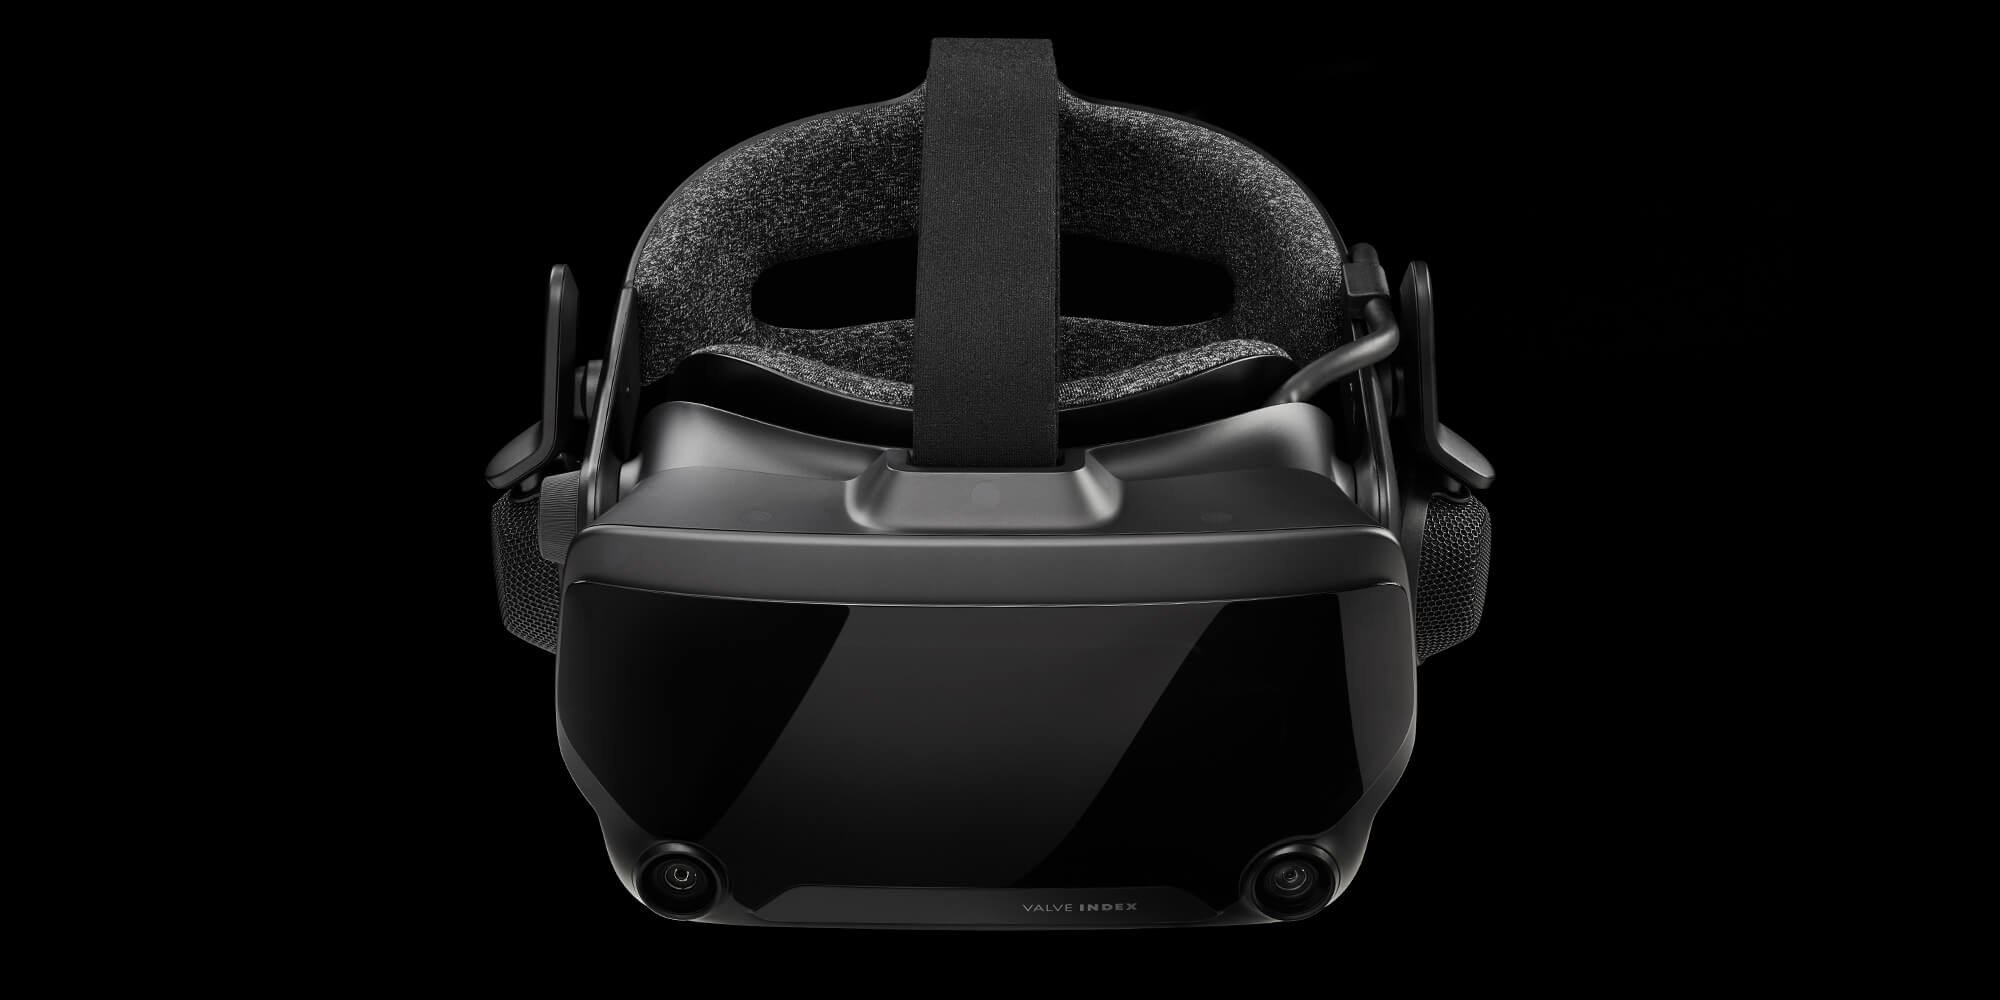 Valve Index VR headset fully detailed: Price, specs, release